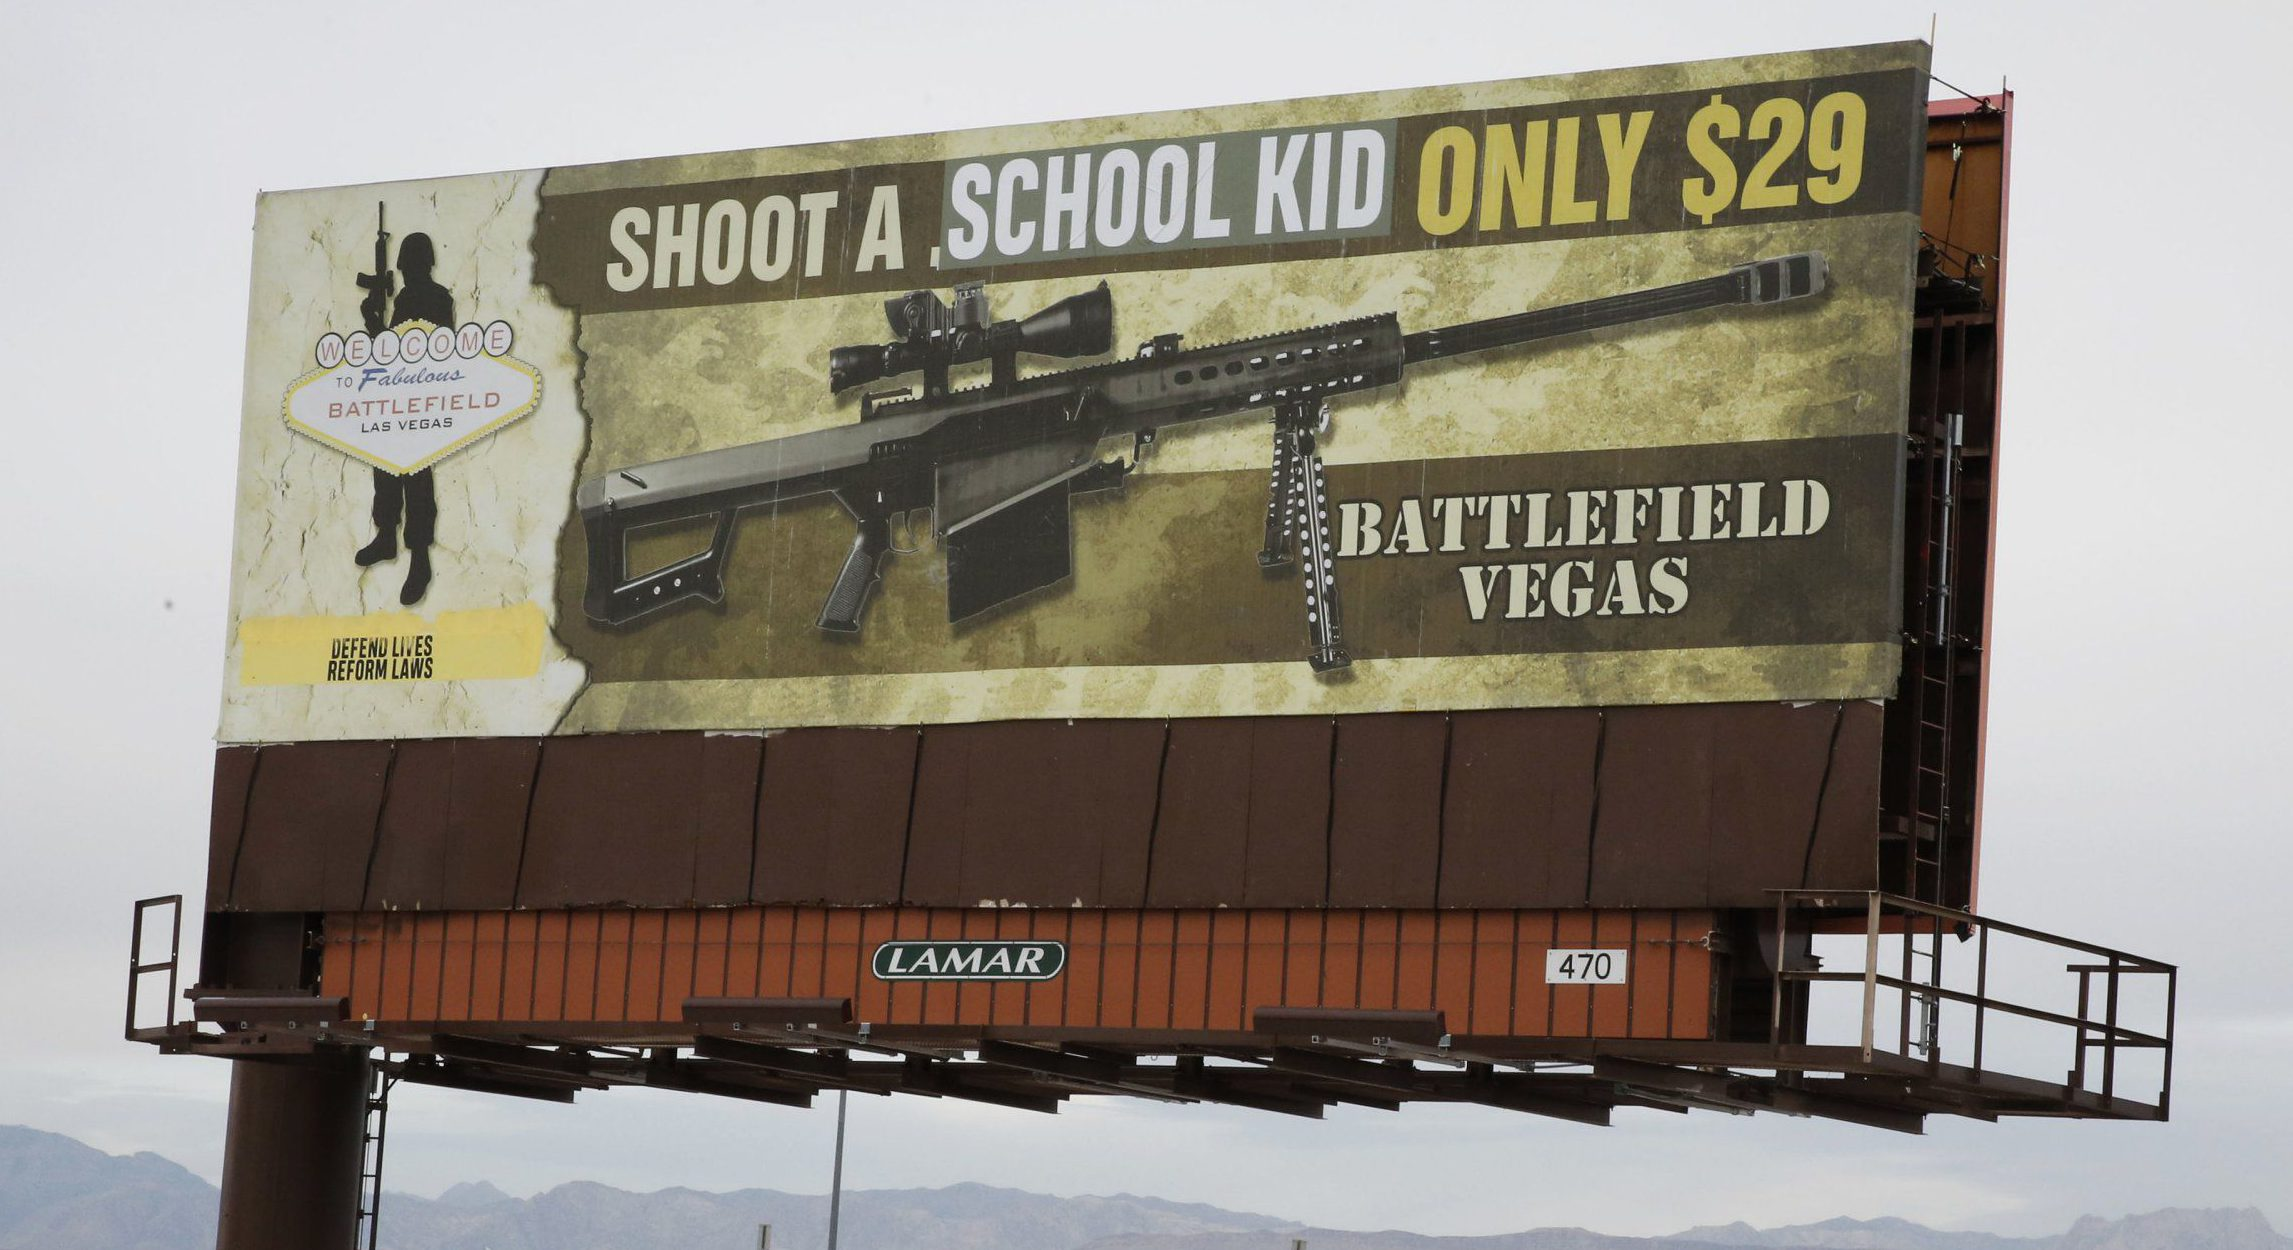 Vandalised billboard advertises shooting a school kid for $29